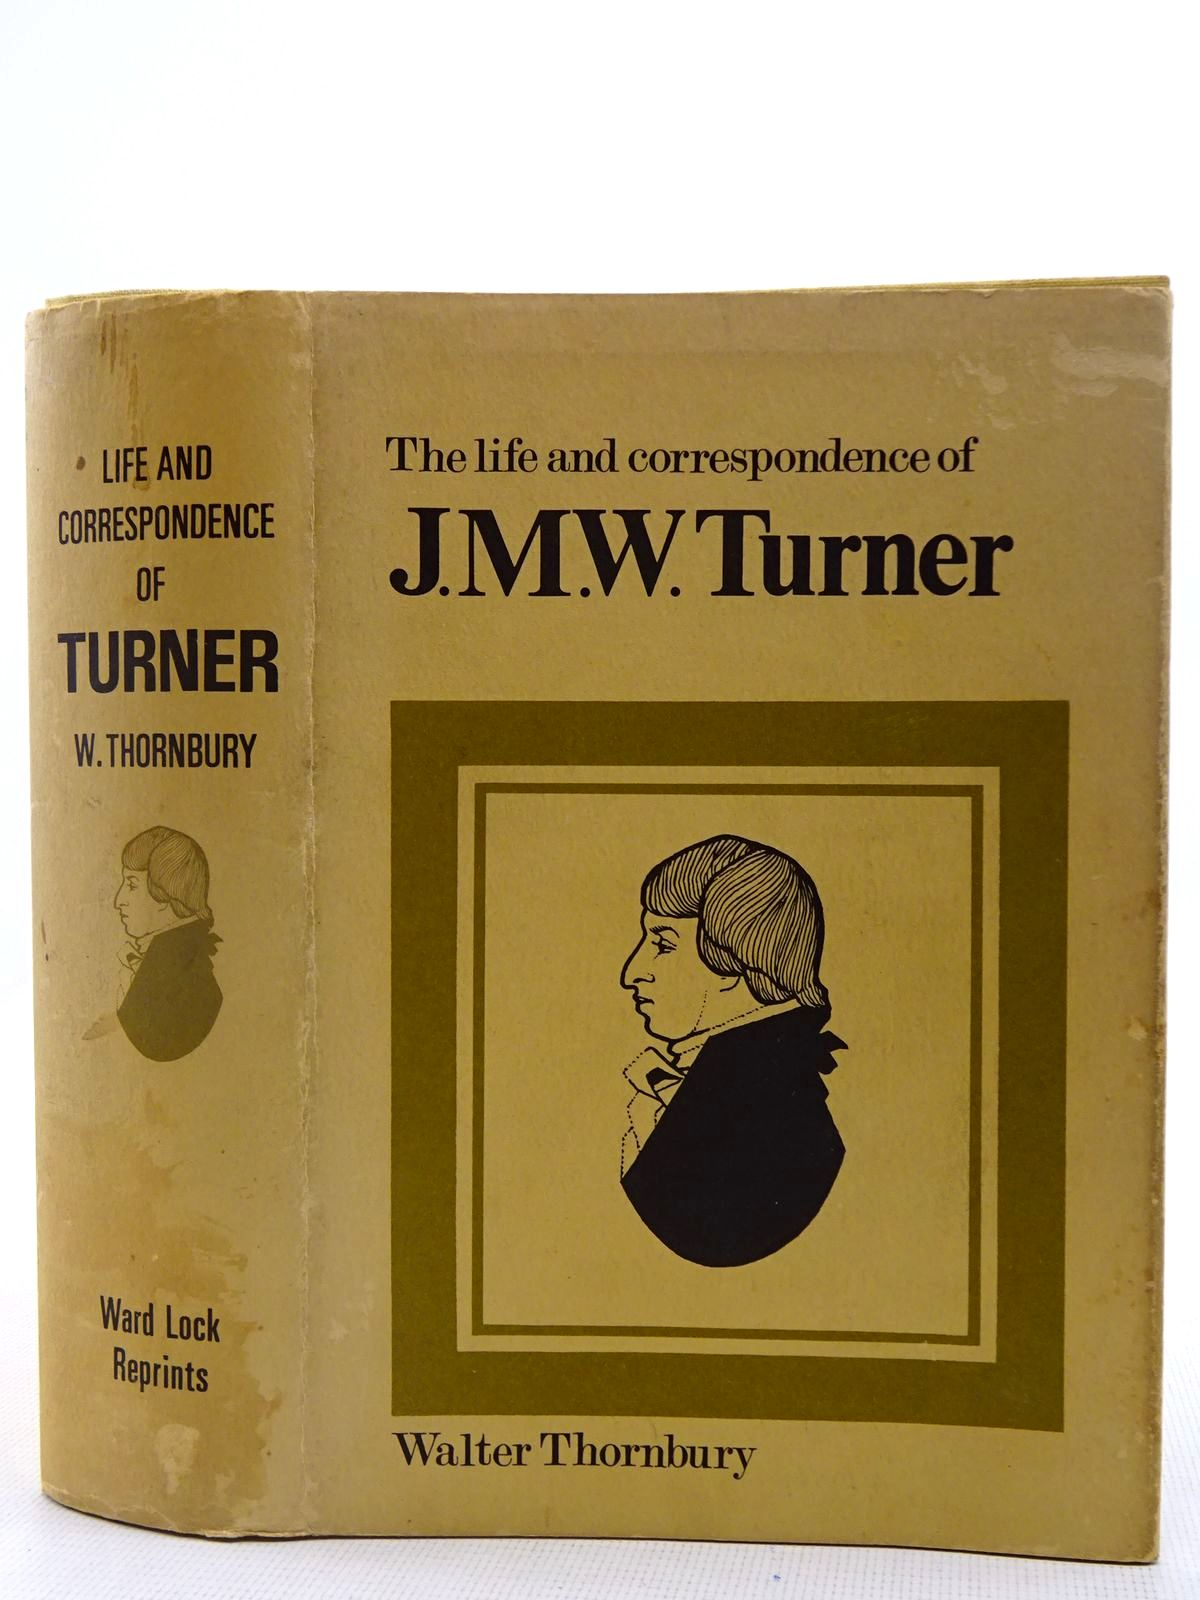 Photo of THE LIFE OF J. M. W. TURNER, R.A. written by Thornbury, Walter published by Ward Lock Reprints (STOCK CODE: 2128287)  for sale by Stella & Rose's Books